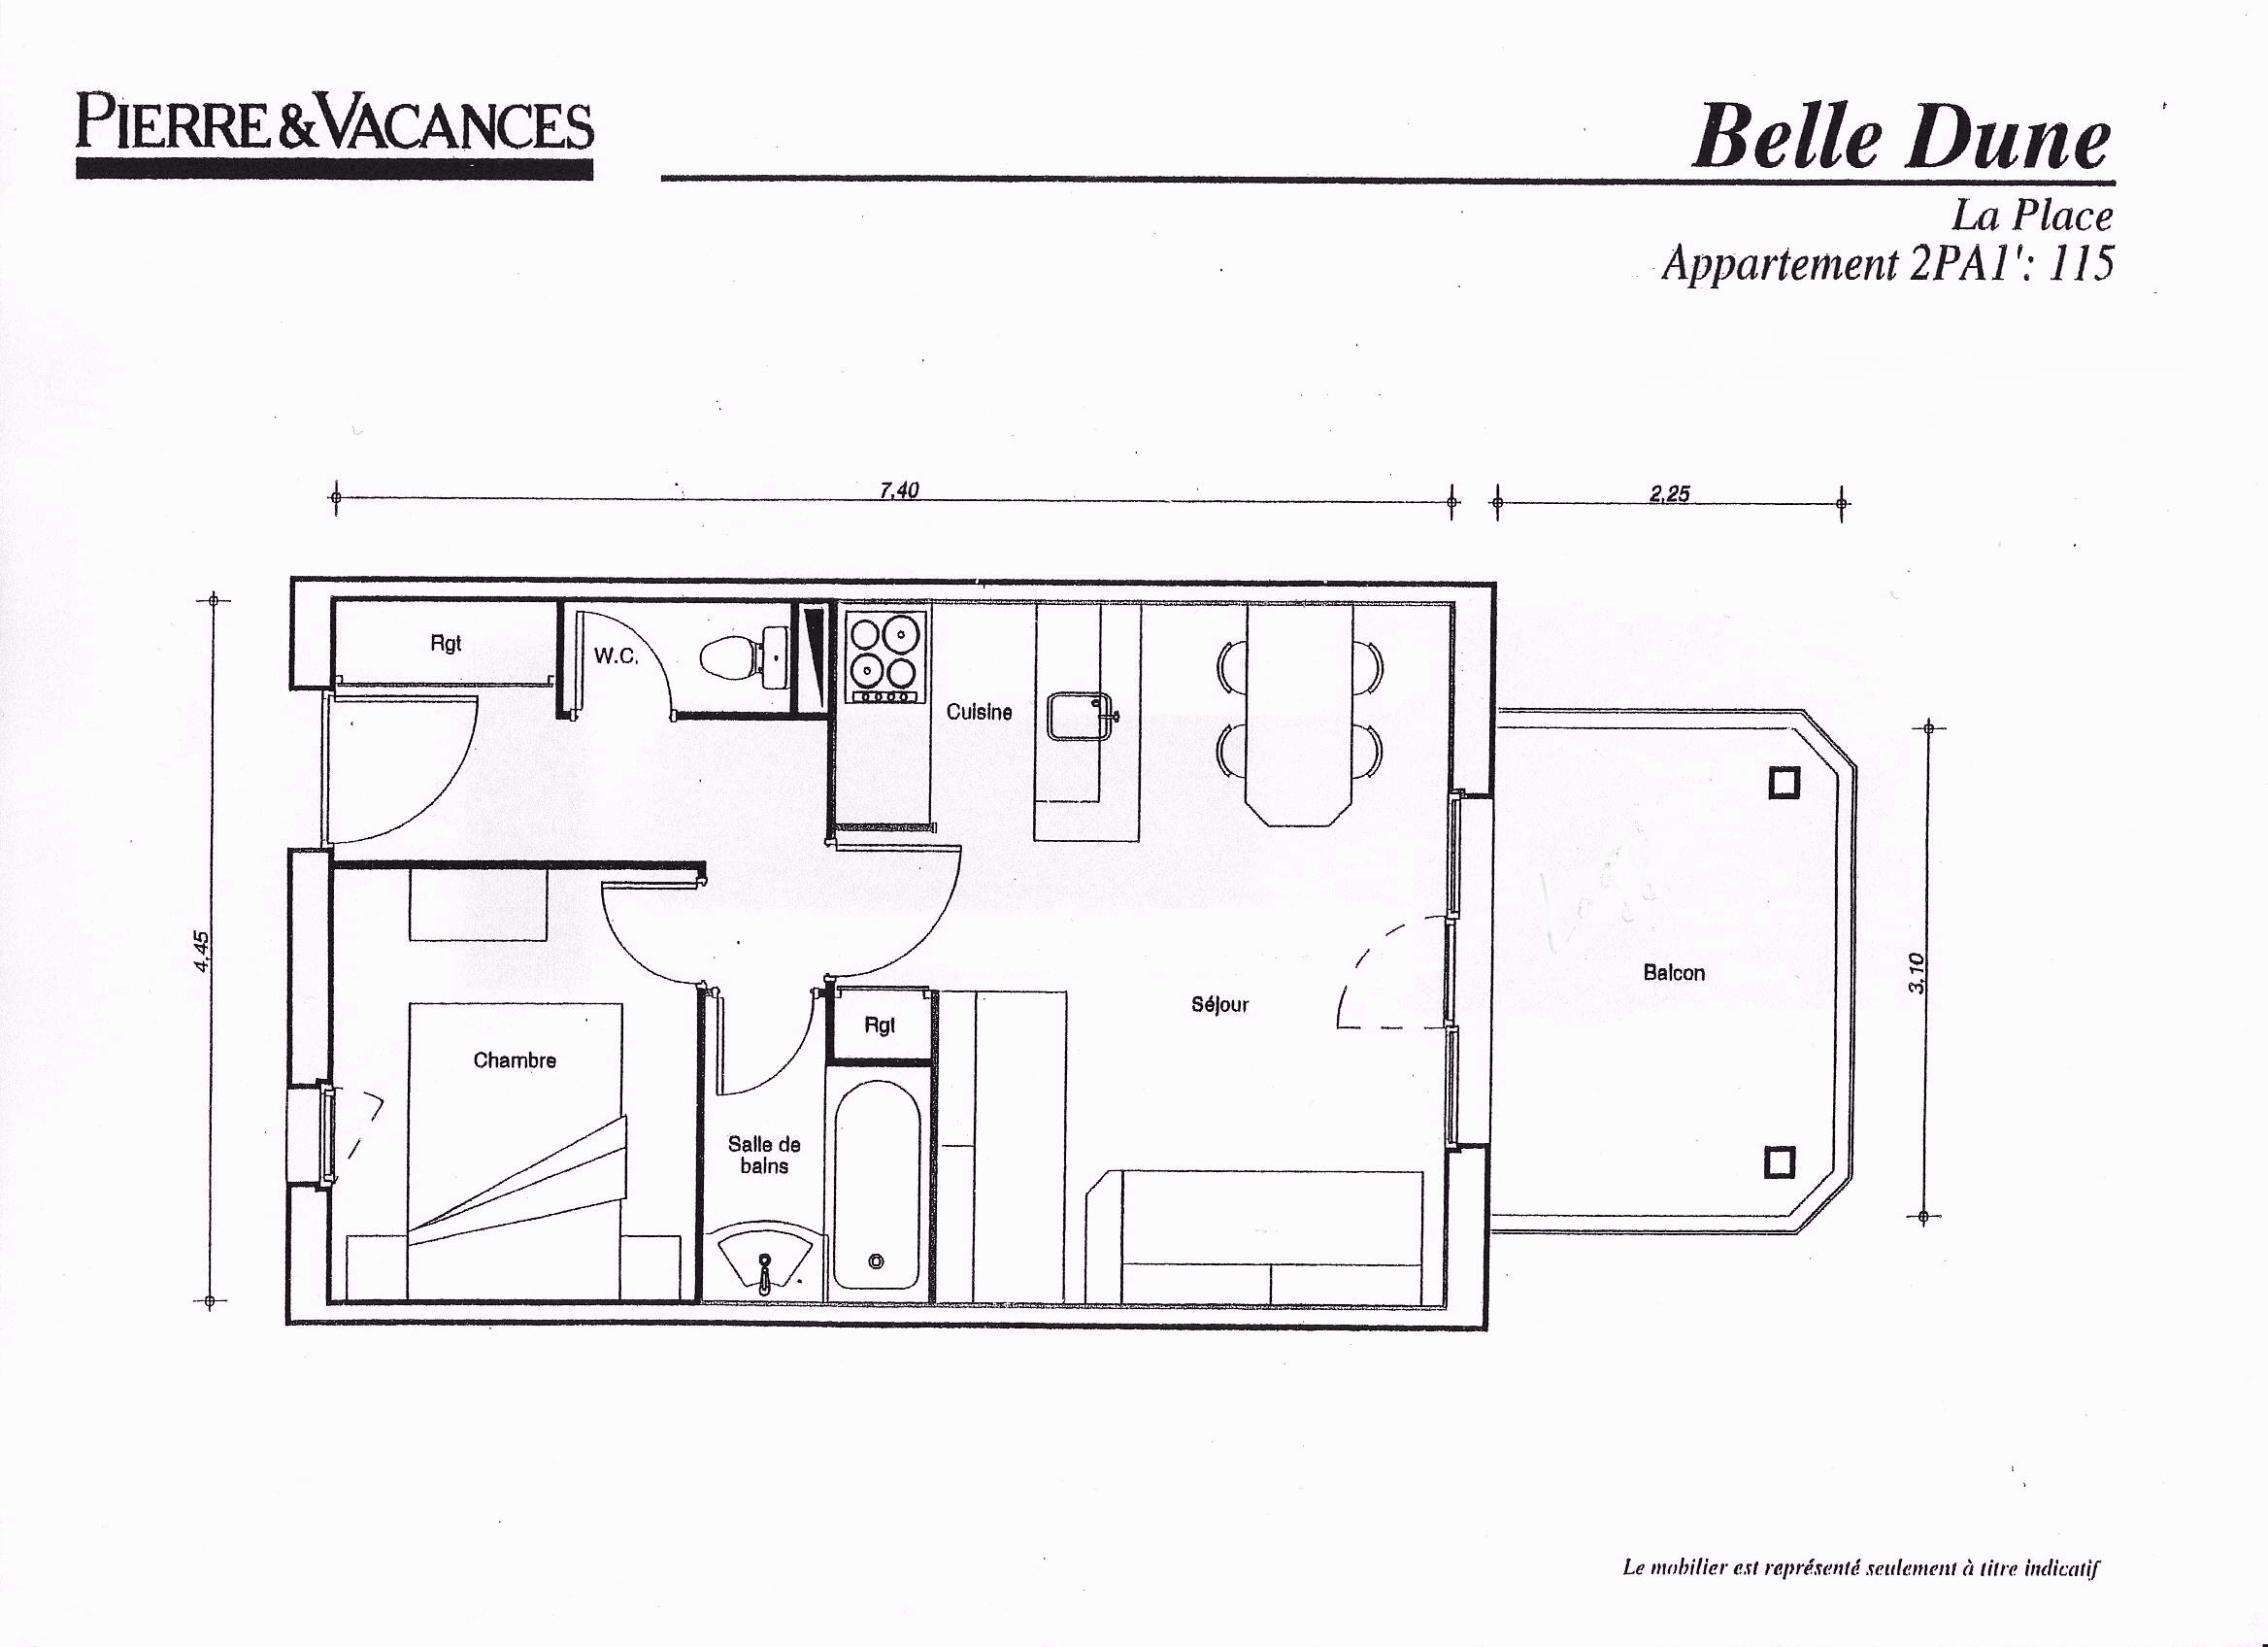 Plan appart belle dune 115 for Appart hotel fort mahon